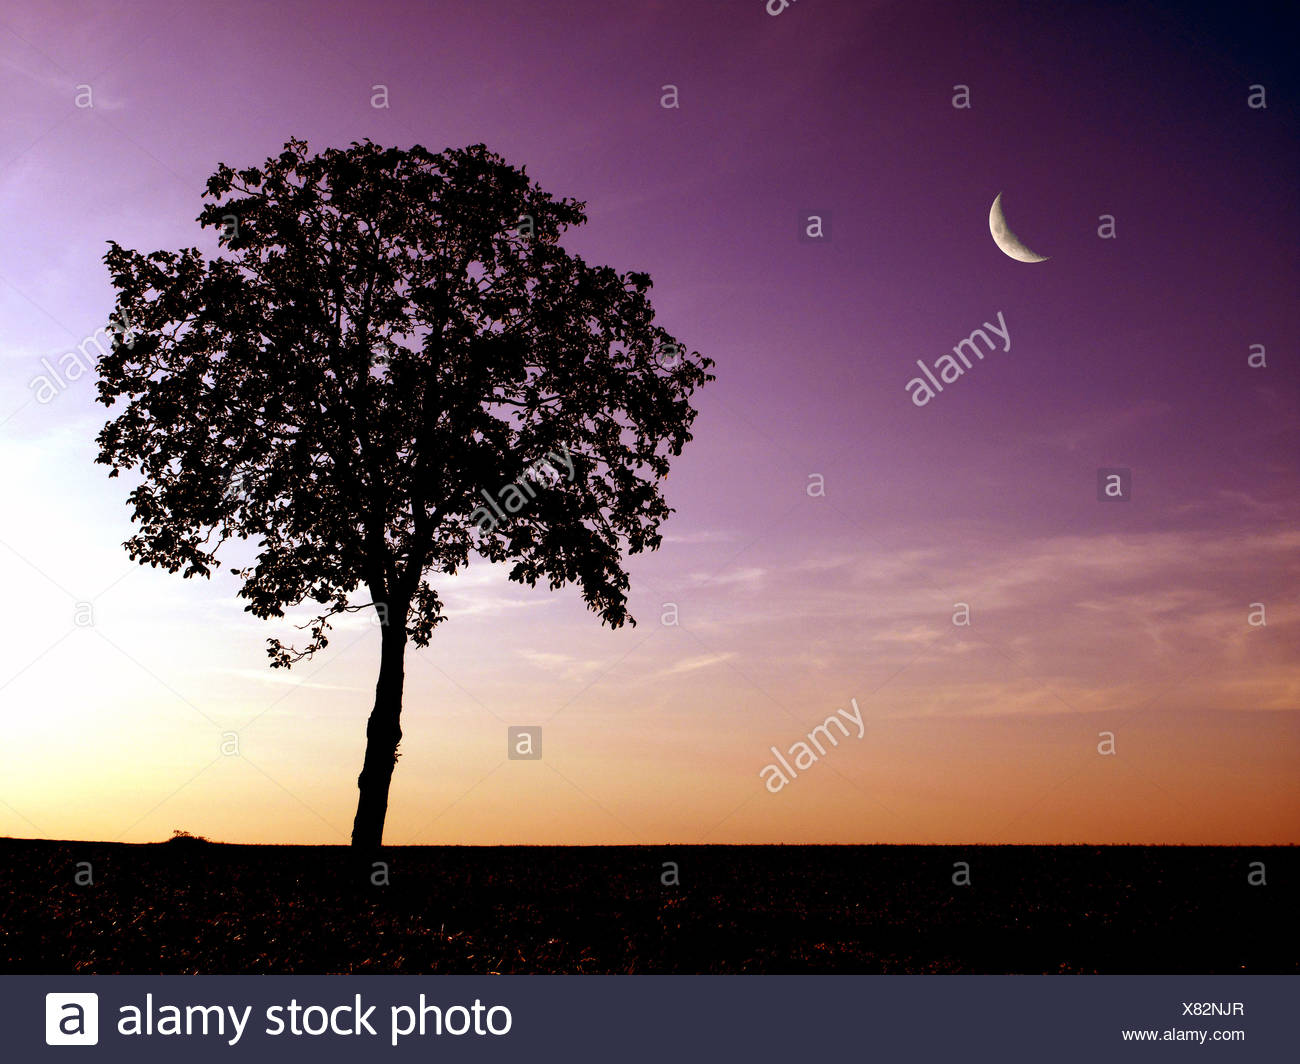 Crescent moon and tree at dusk - Stock Image